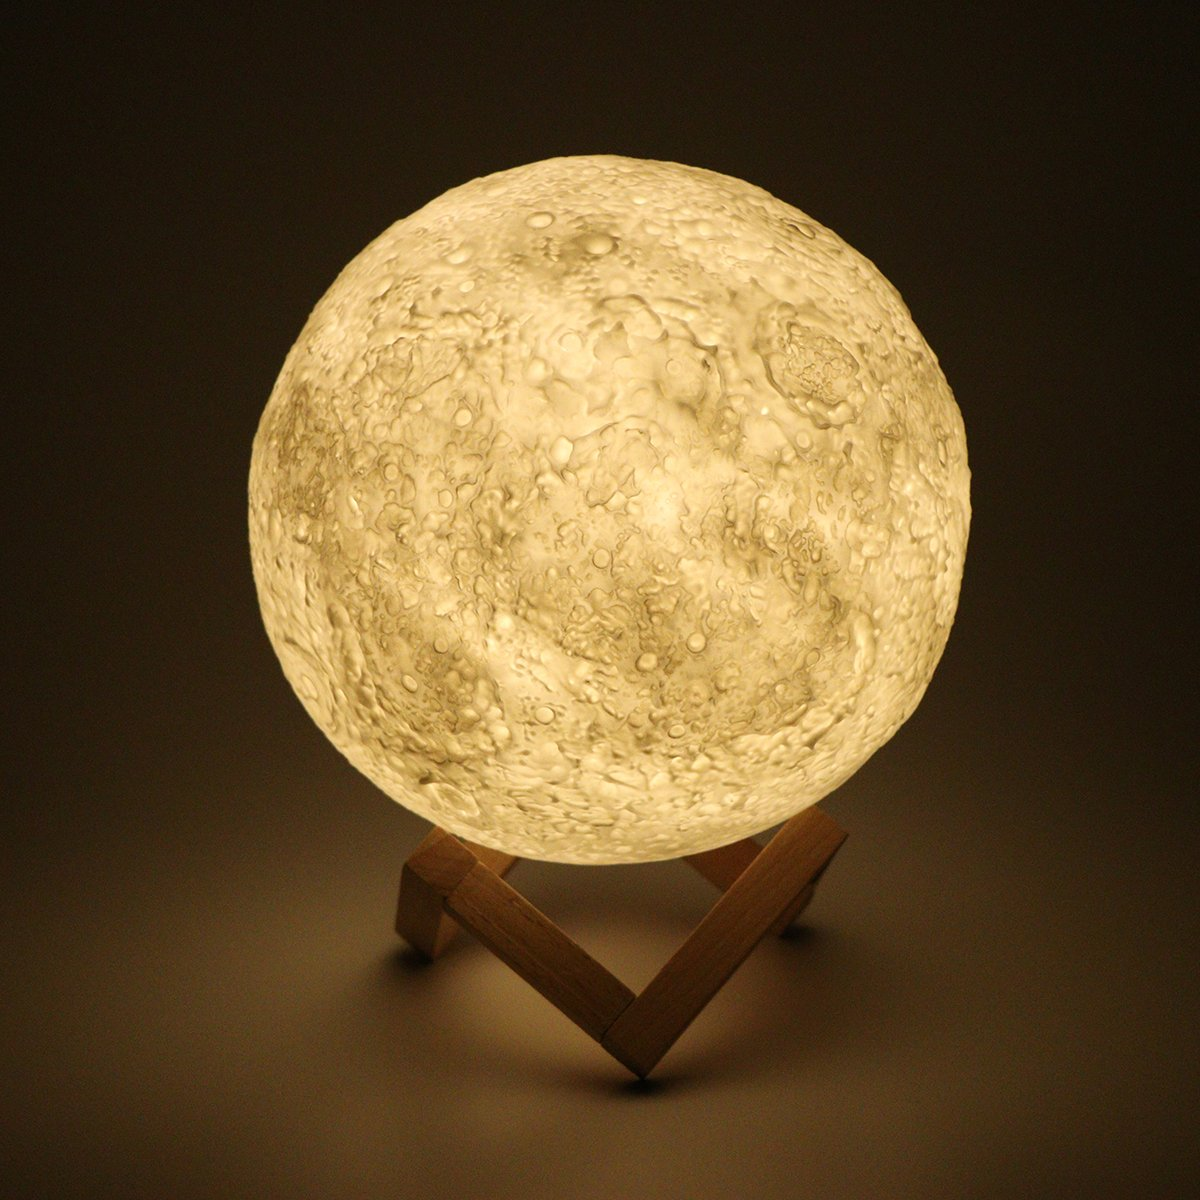 Amazon.com : Night Light 3D Printing Moon Lamp, 3 Colors Dimmable ...